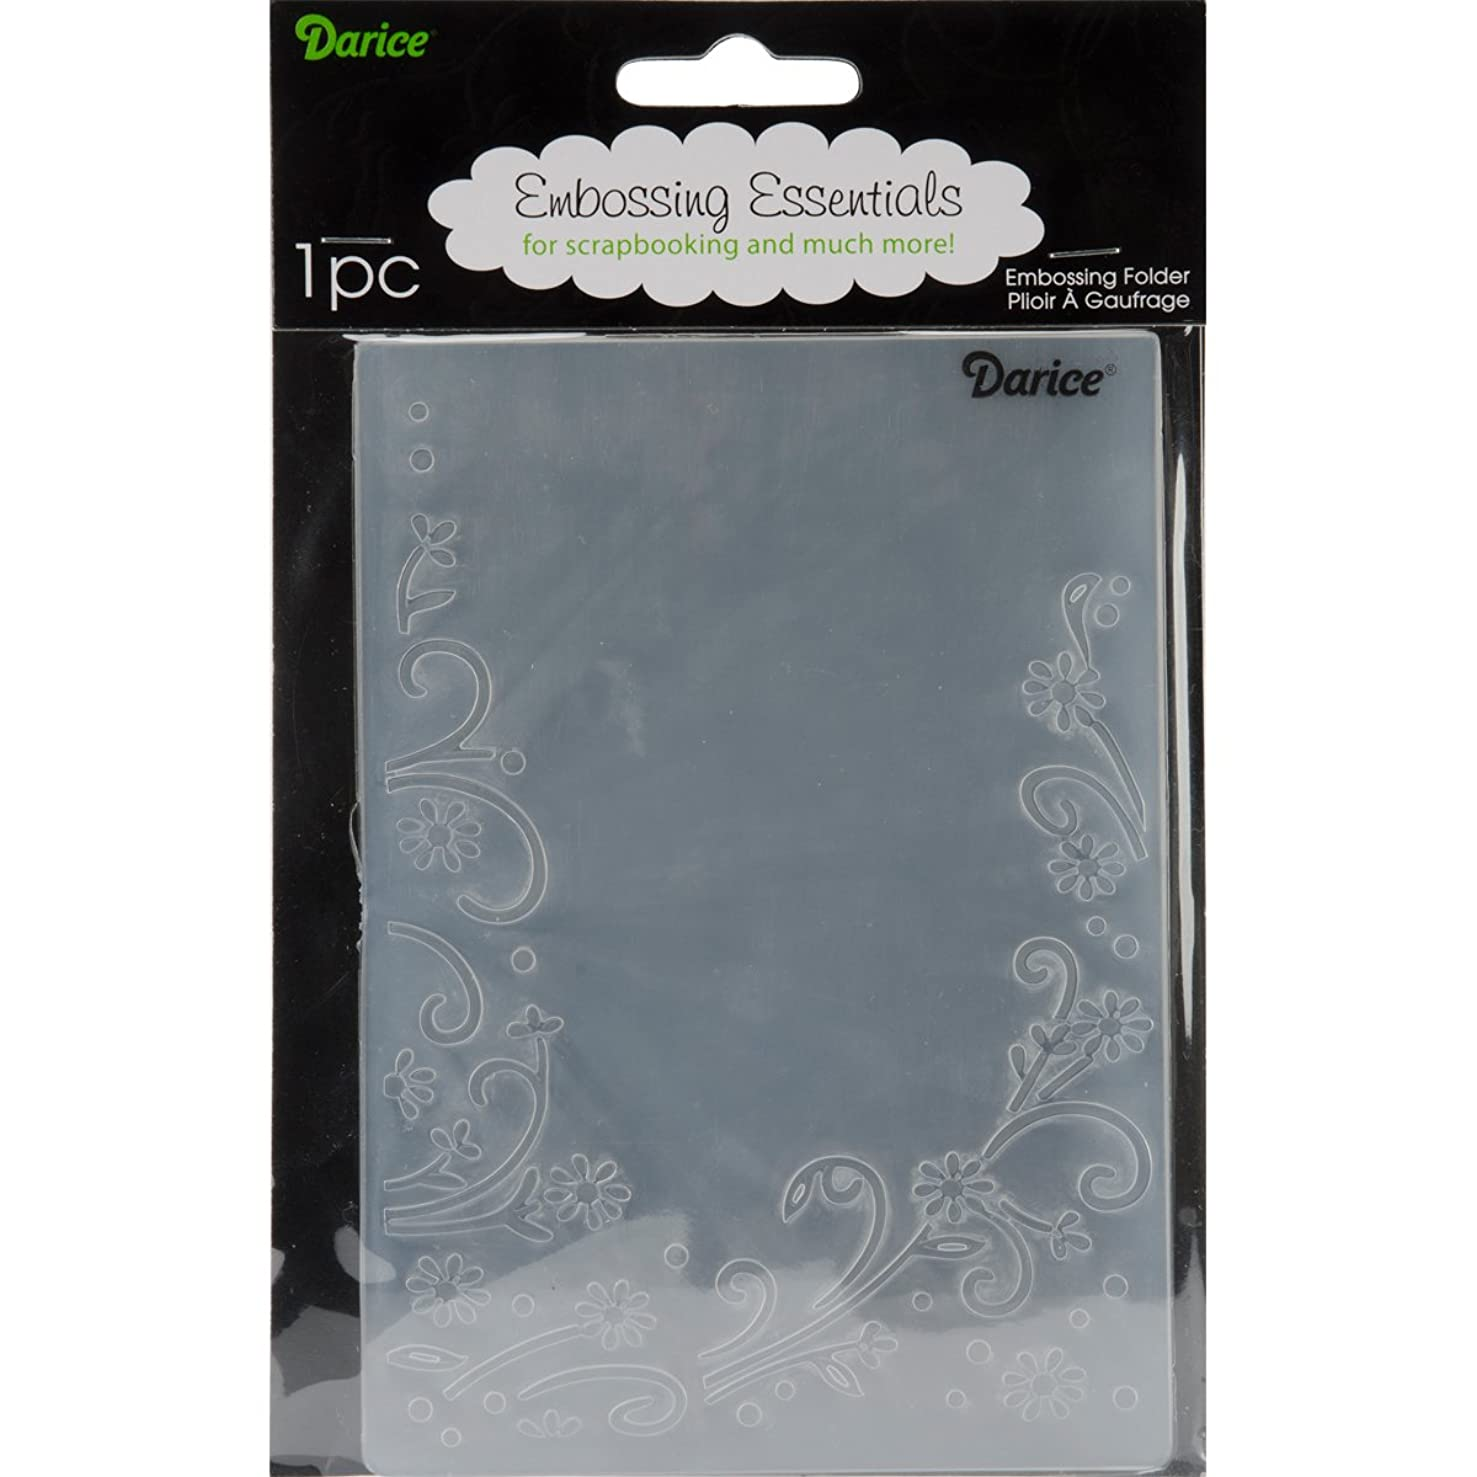 Darice Floral Border Embossing Folder, 4 .25-Inch by 5.75-Inch